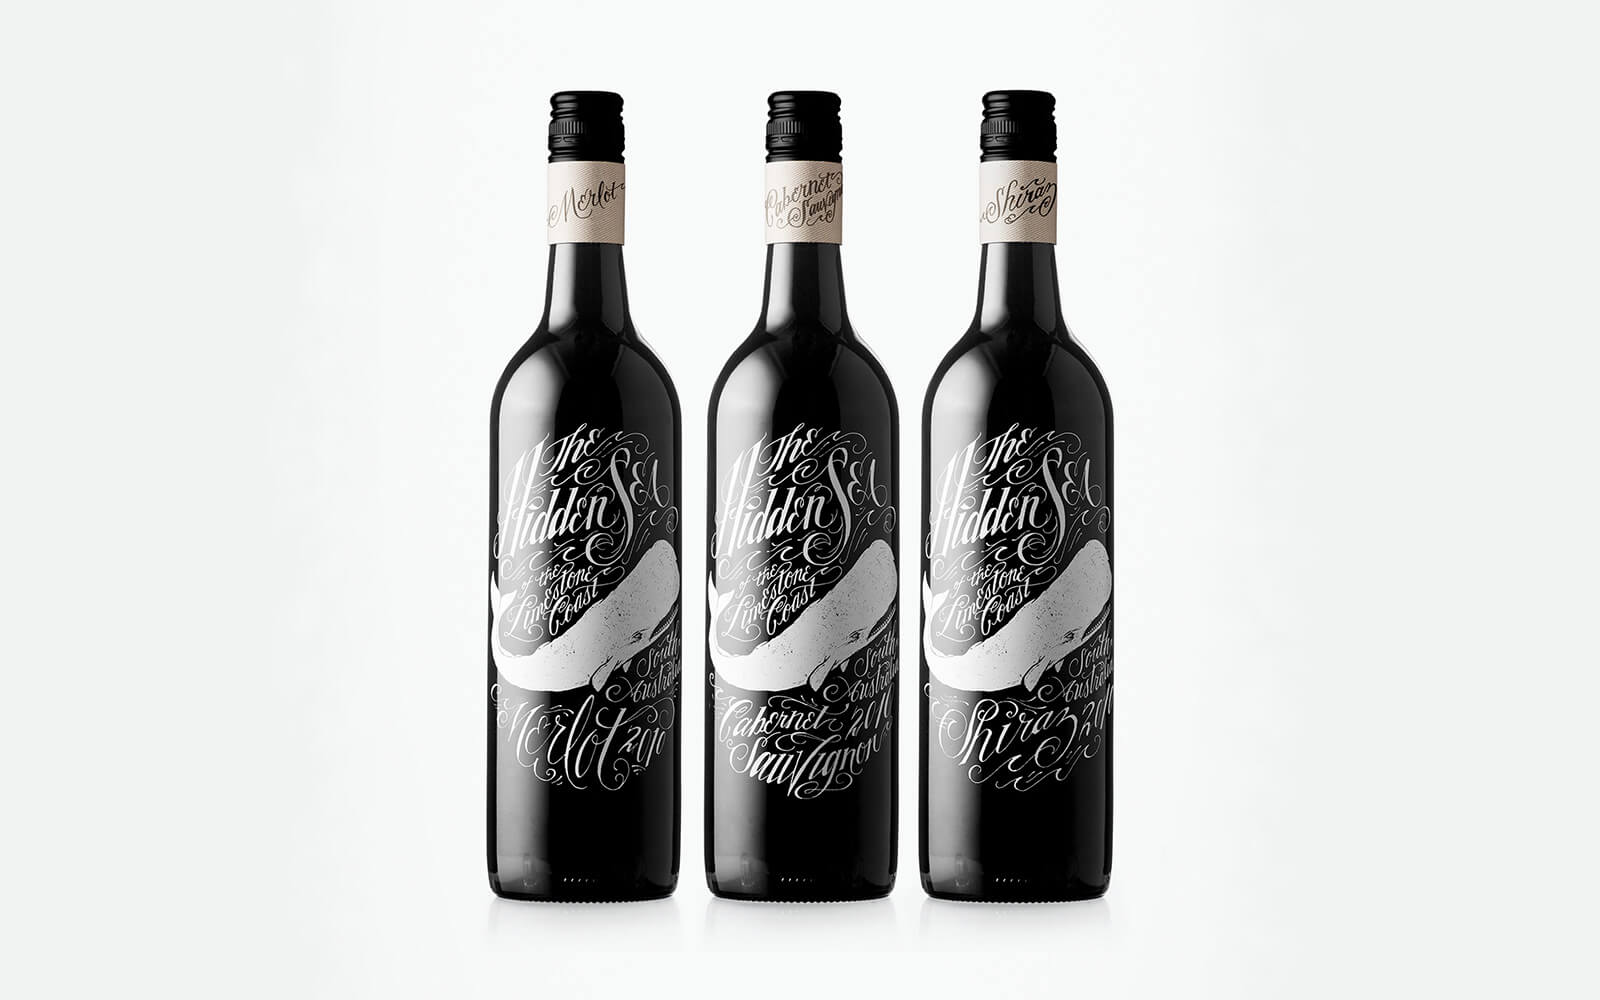 Analyser-et-decrypter-les-typographies-en-packaging-the-hidden-merlot